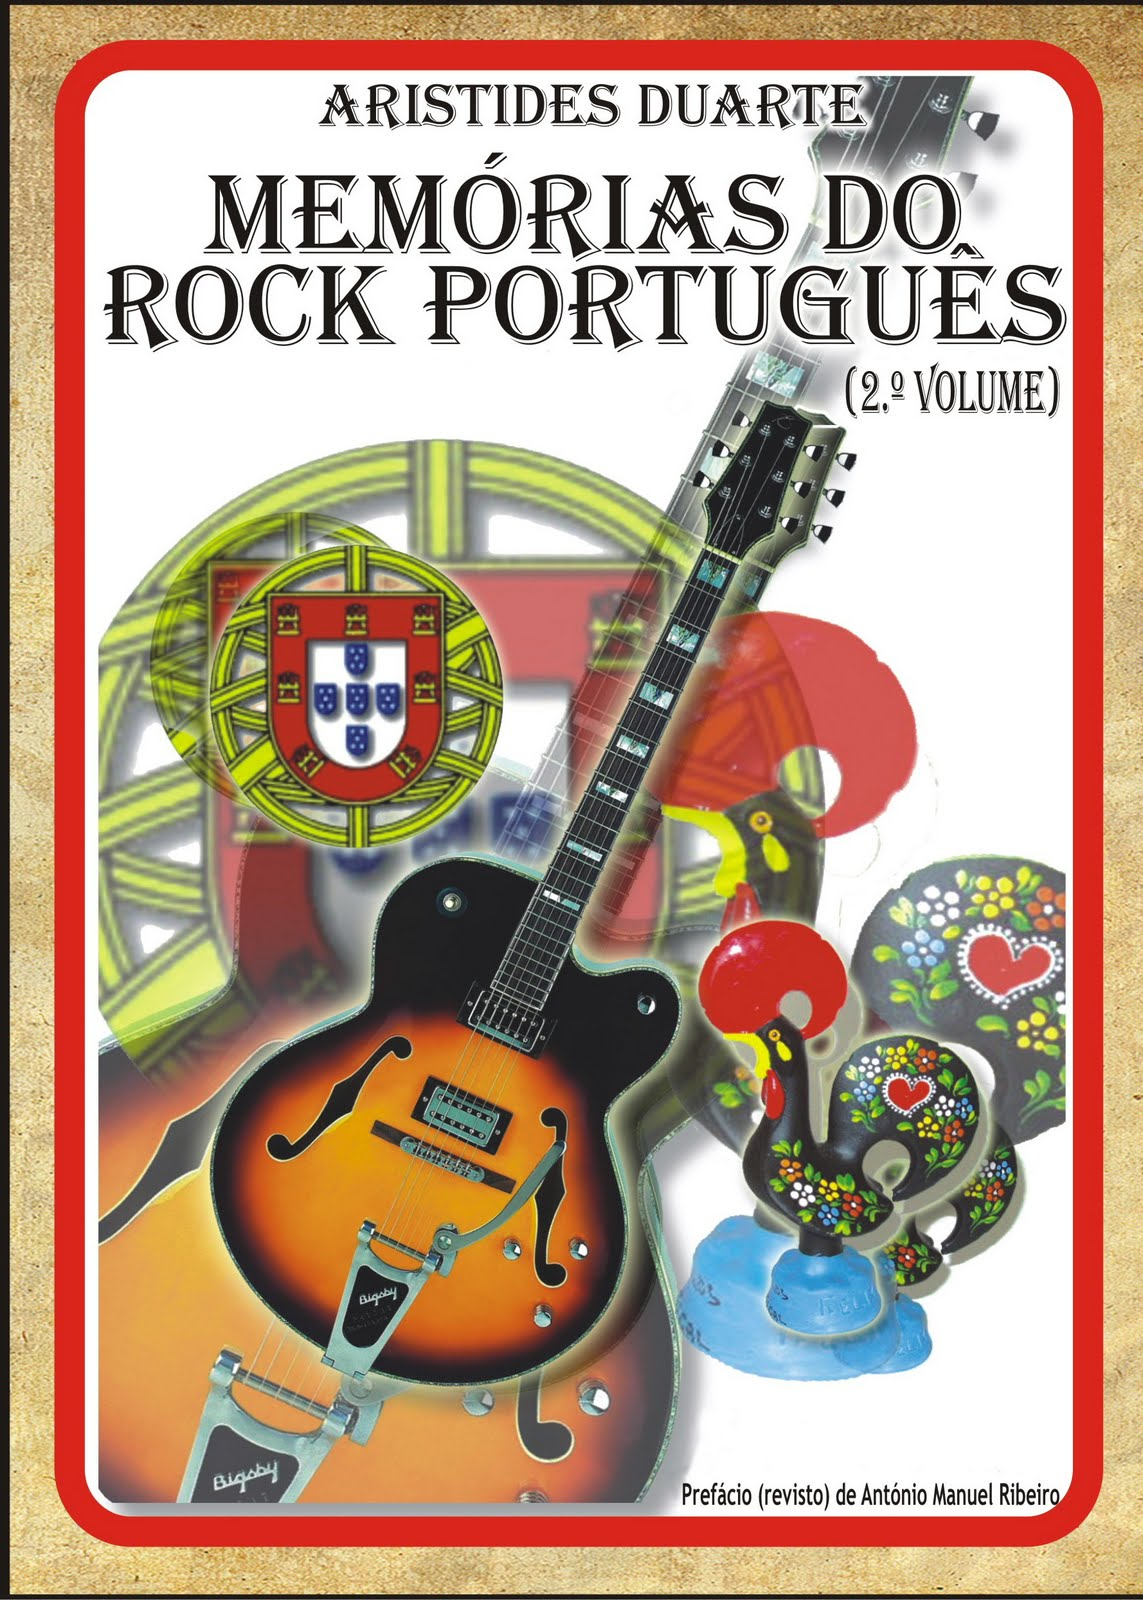 [2010,+Memórias+do+Rock+Português,+de+Aristides+Duarte.+2010]